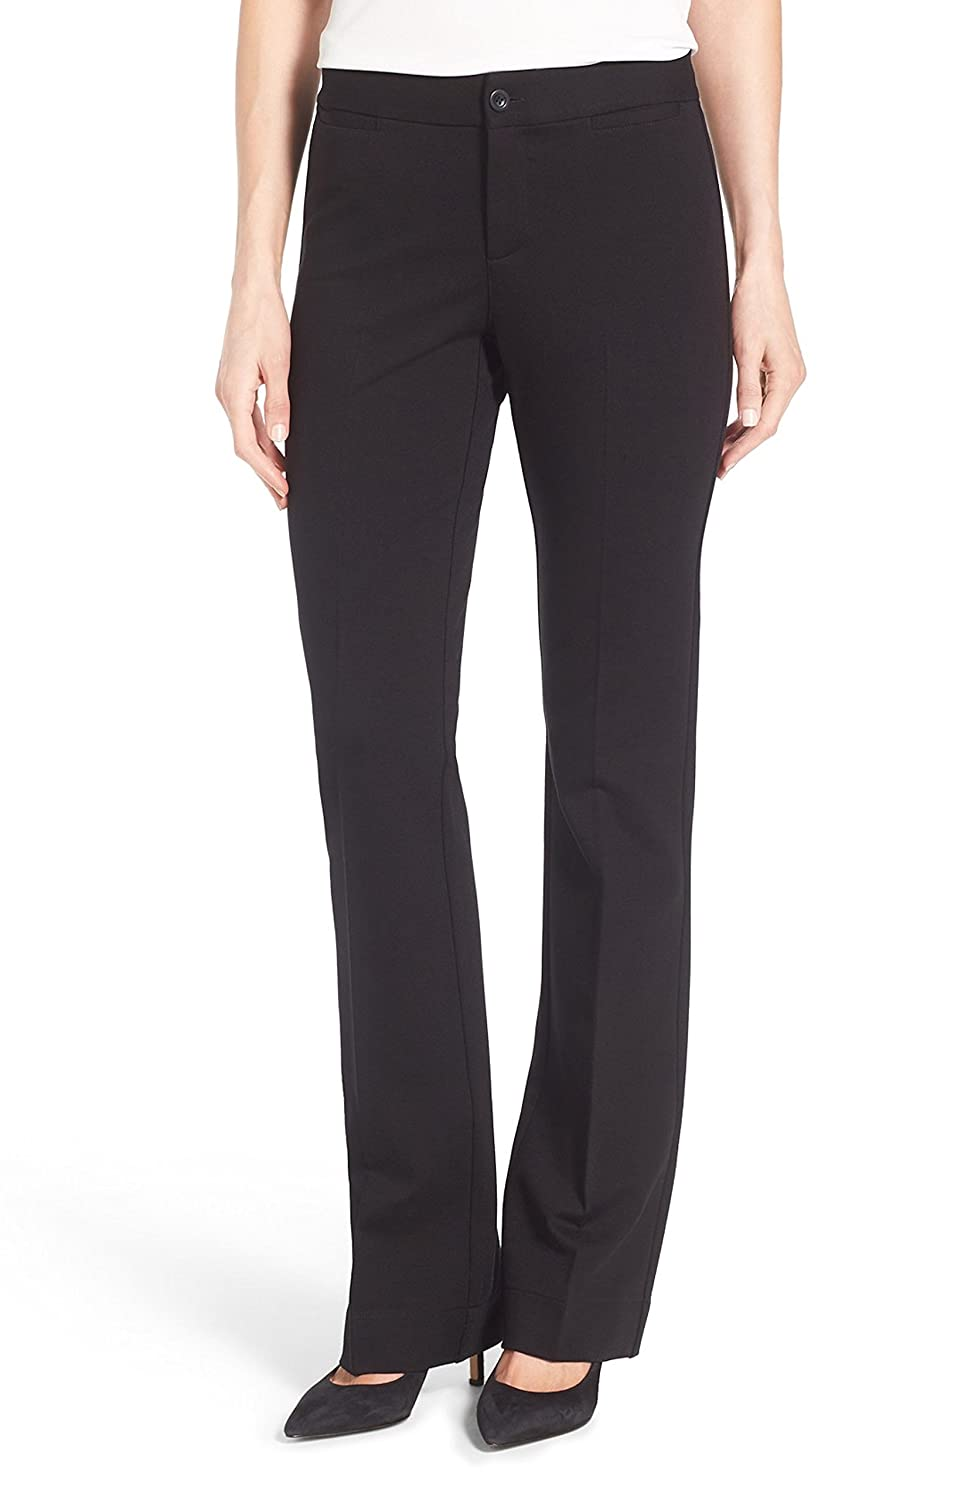 jones new york collection women black stone straight leg pants size 4